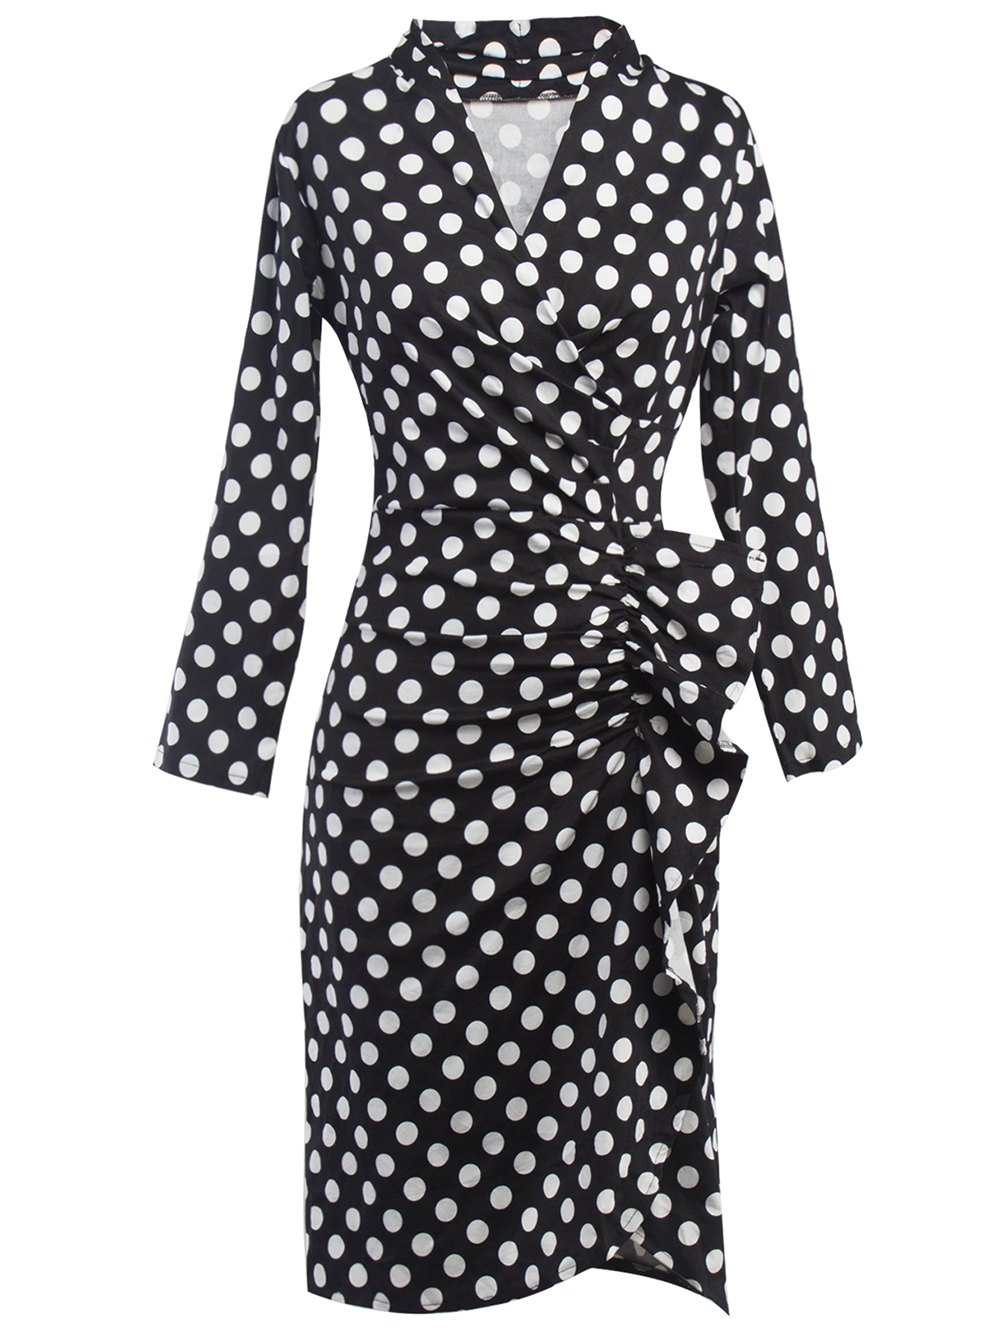 Polka Dot Ruched Surplice DressClothes<br><br><br>Size: 2XL<br>Color: BLACK